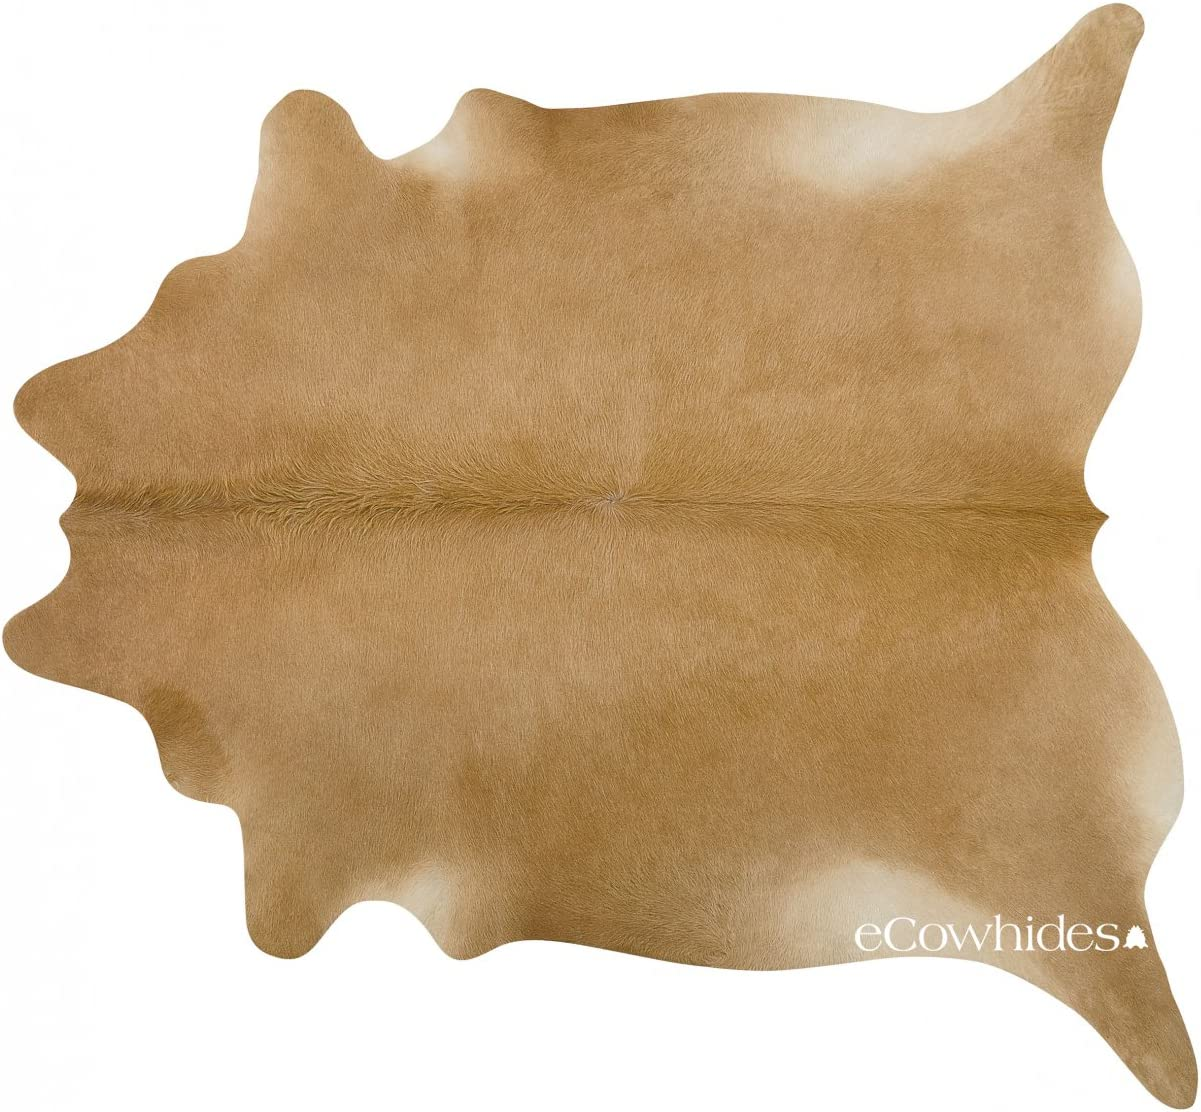 eCowhides Palomino Brazilian Cowhide Area Rug, Cowskin Leather Hide for Home Living Room XL 7 x 6 ft